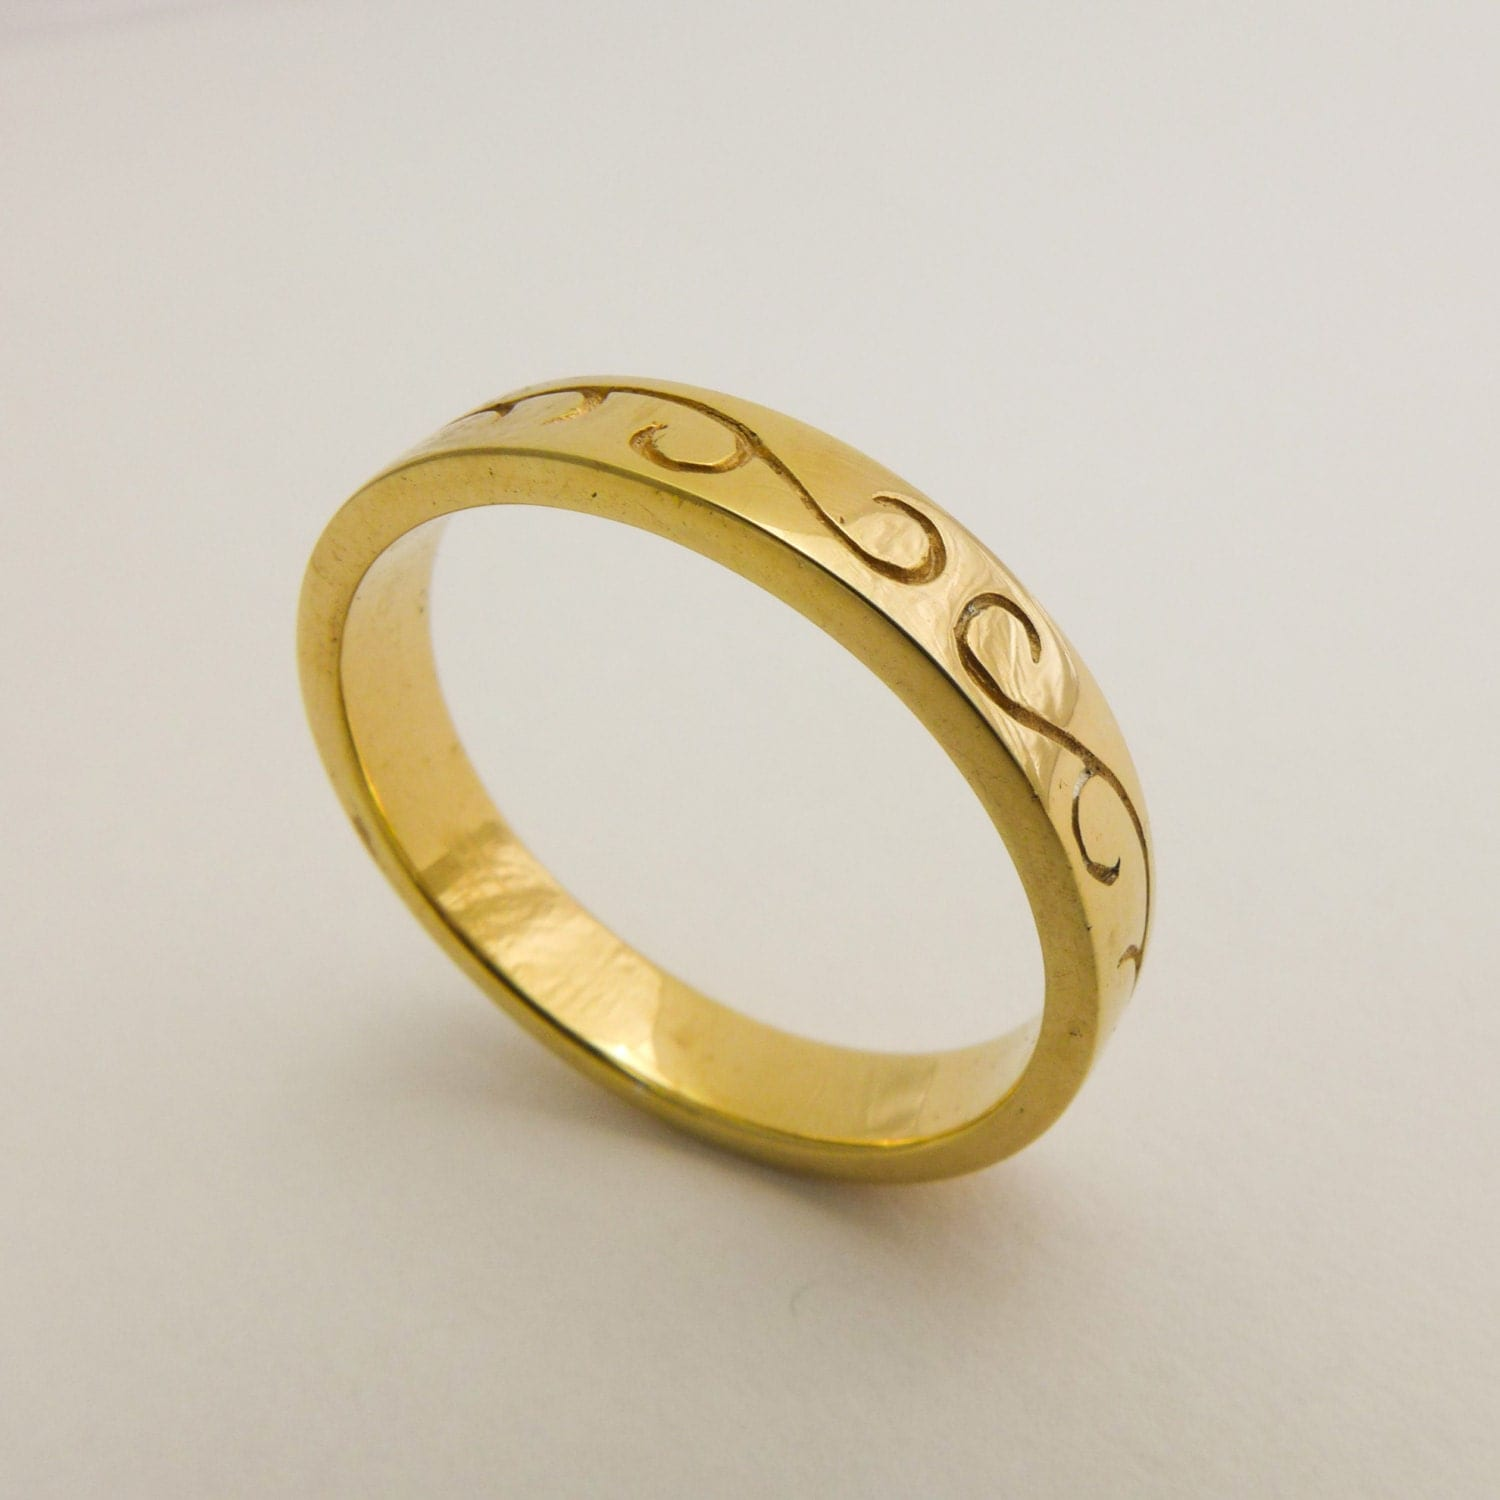 Simplistic Bands: Thin Wedding Ring Engraved Wedding Ring Simple Wedding Band